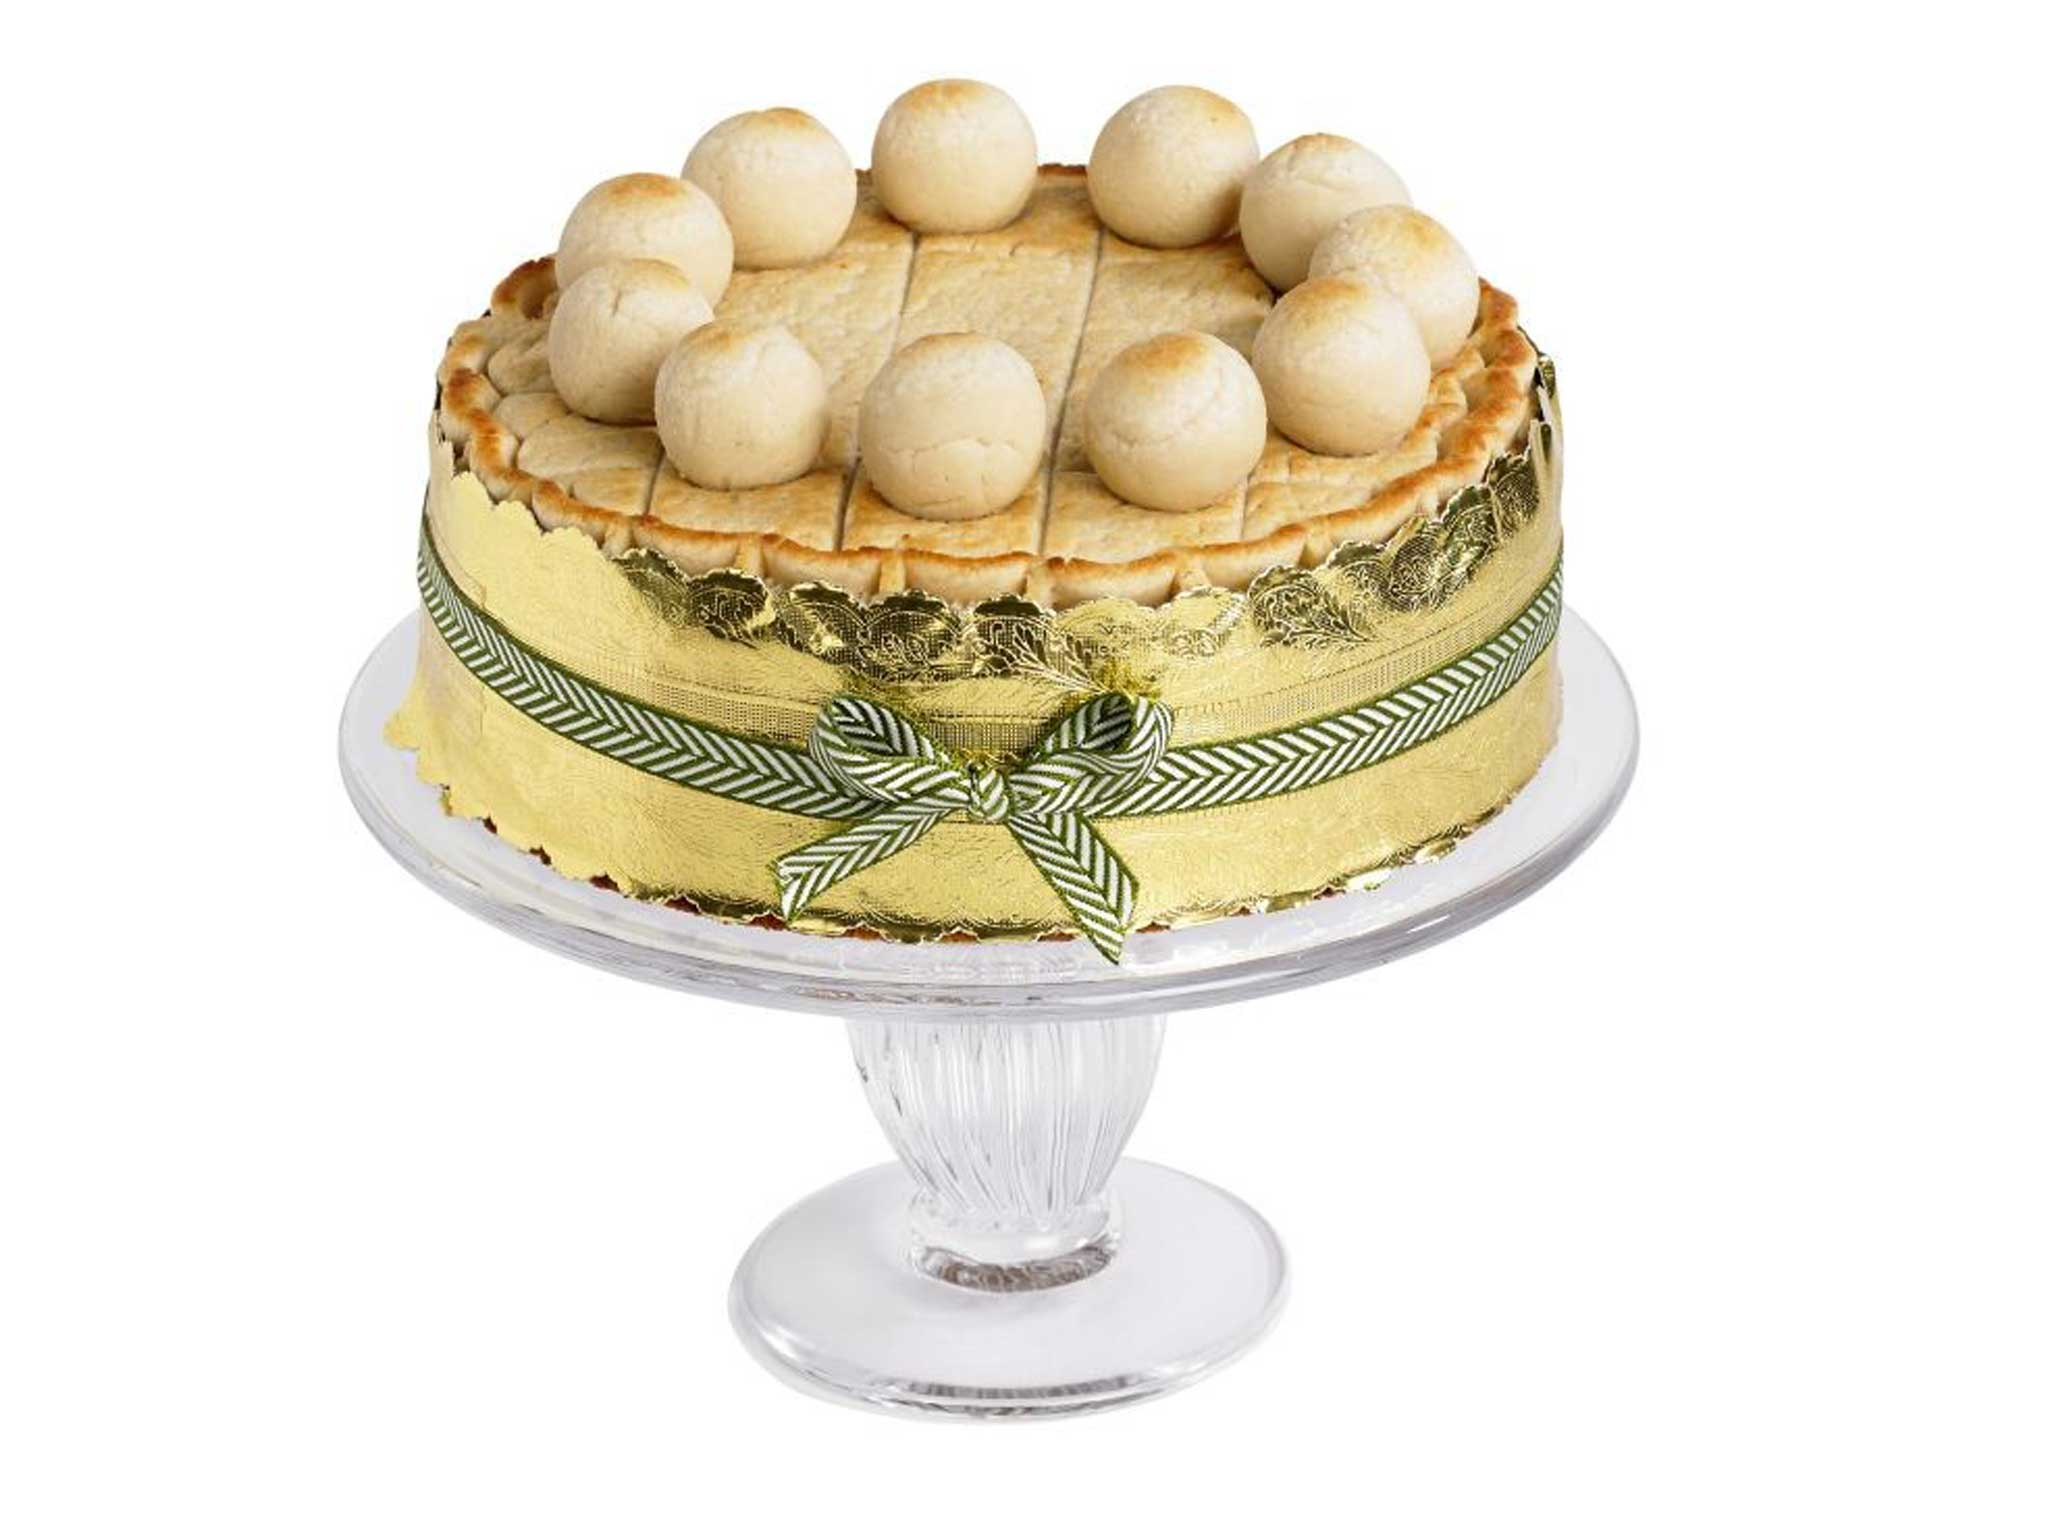 10 best Easter cakes | The Independent